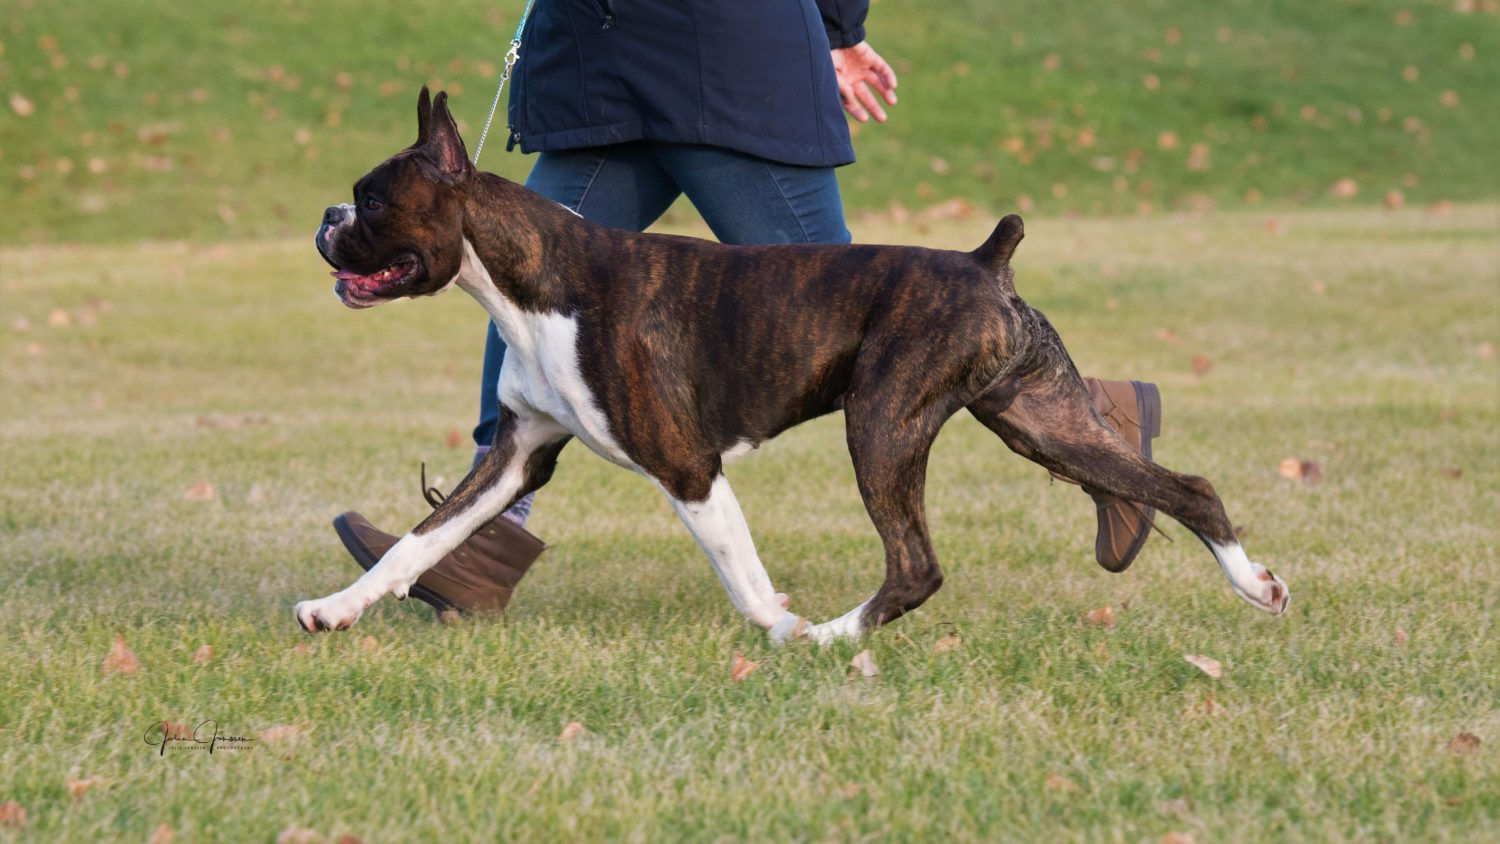 Markus the CK and AKC champion flashy brindle boxer dog showing his movement and side gait outside in an open grass field